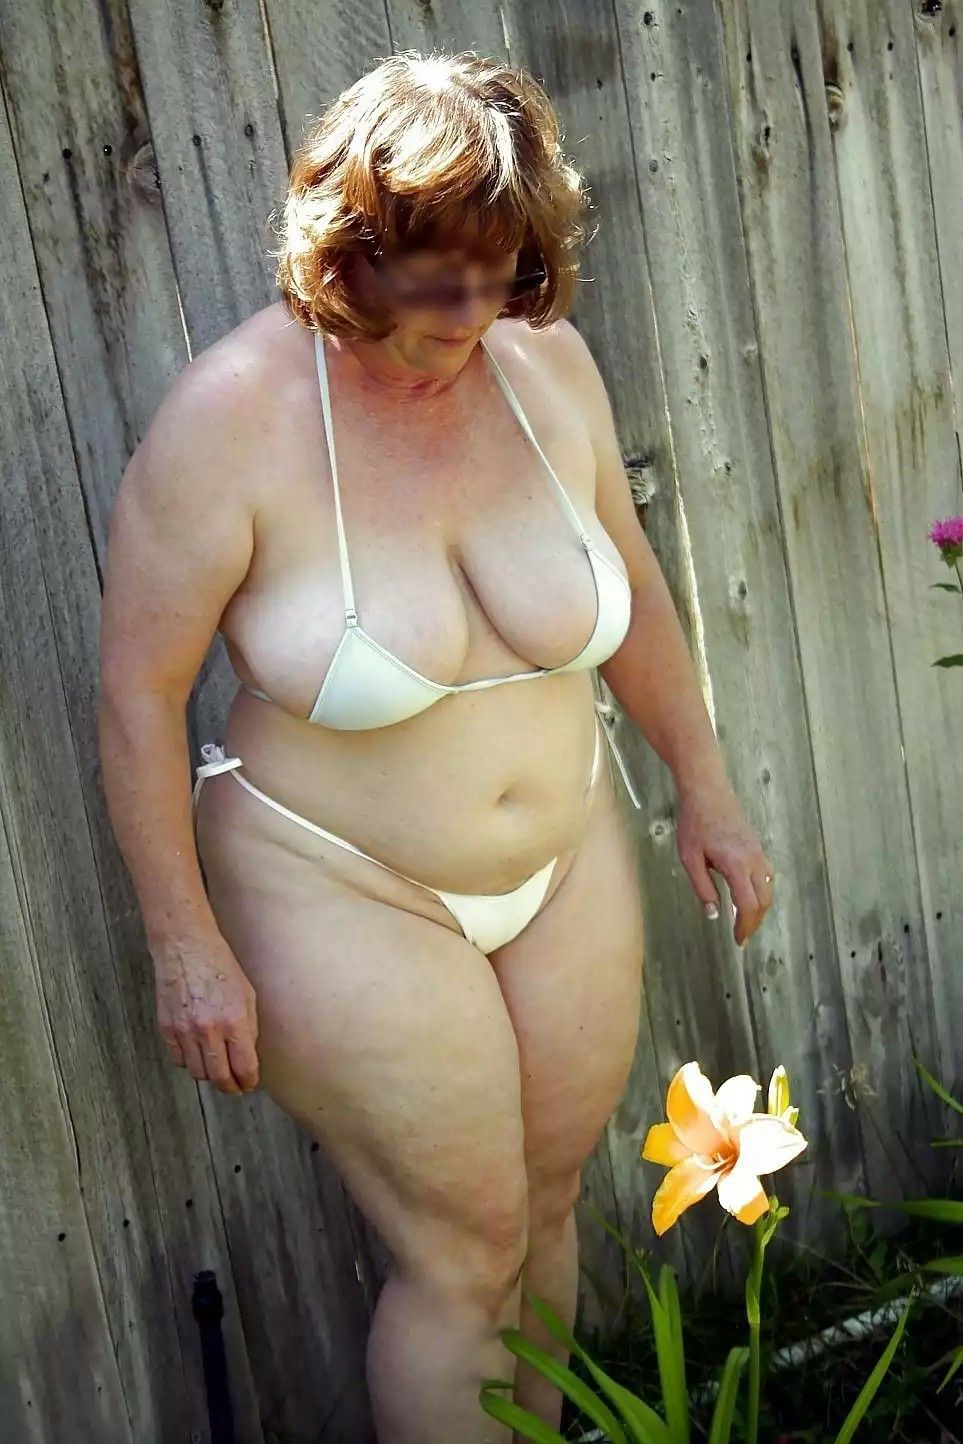 woman Chubby outdoor bbc